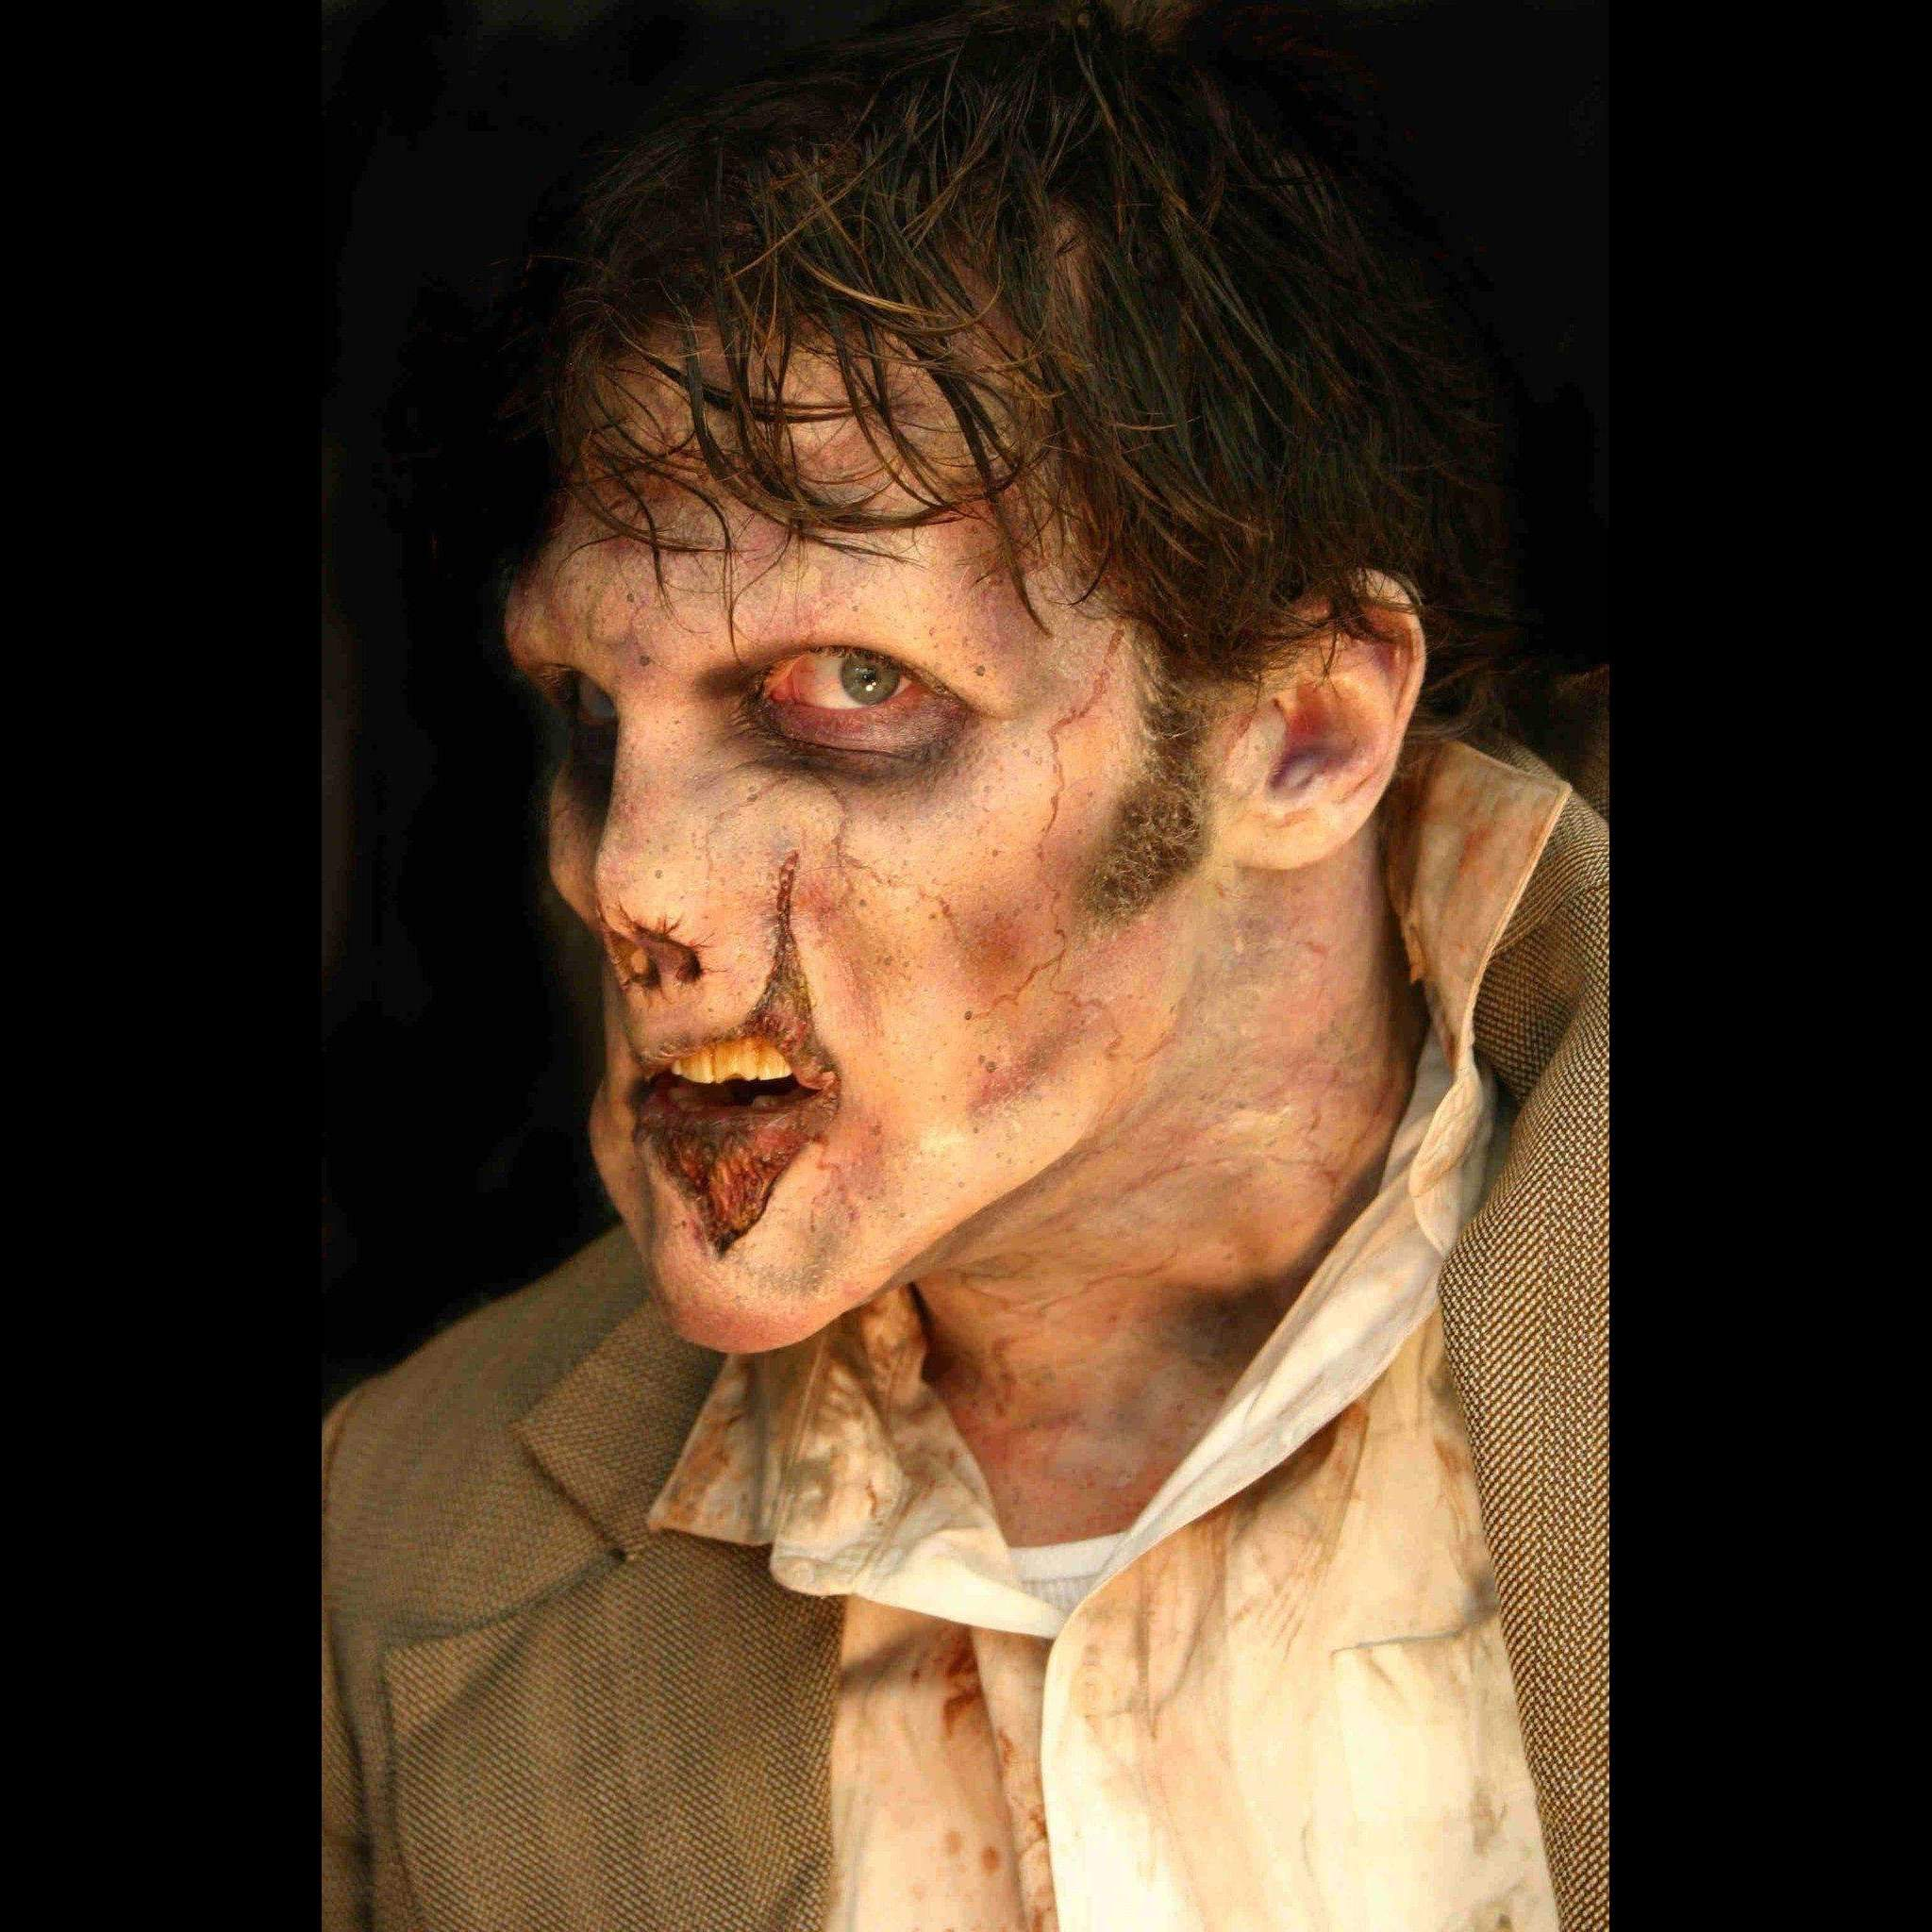 Zombie Makeup Kit Foam Appliance Halloween Latex